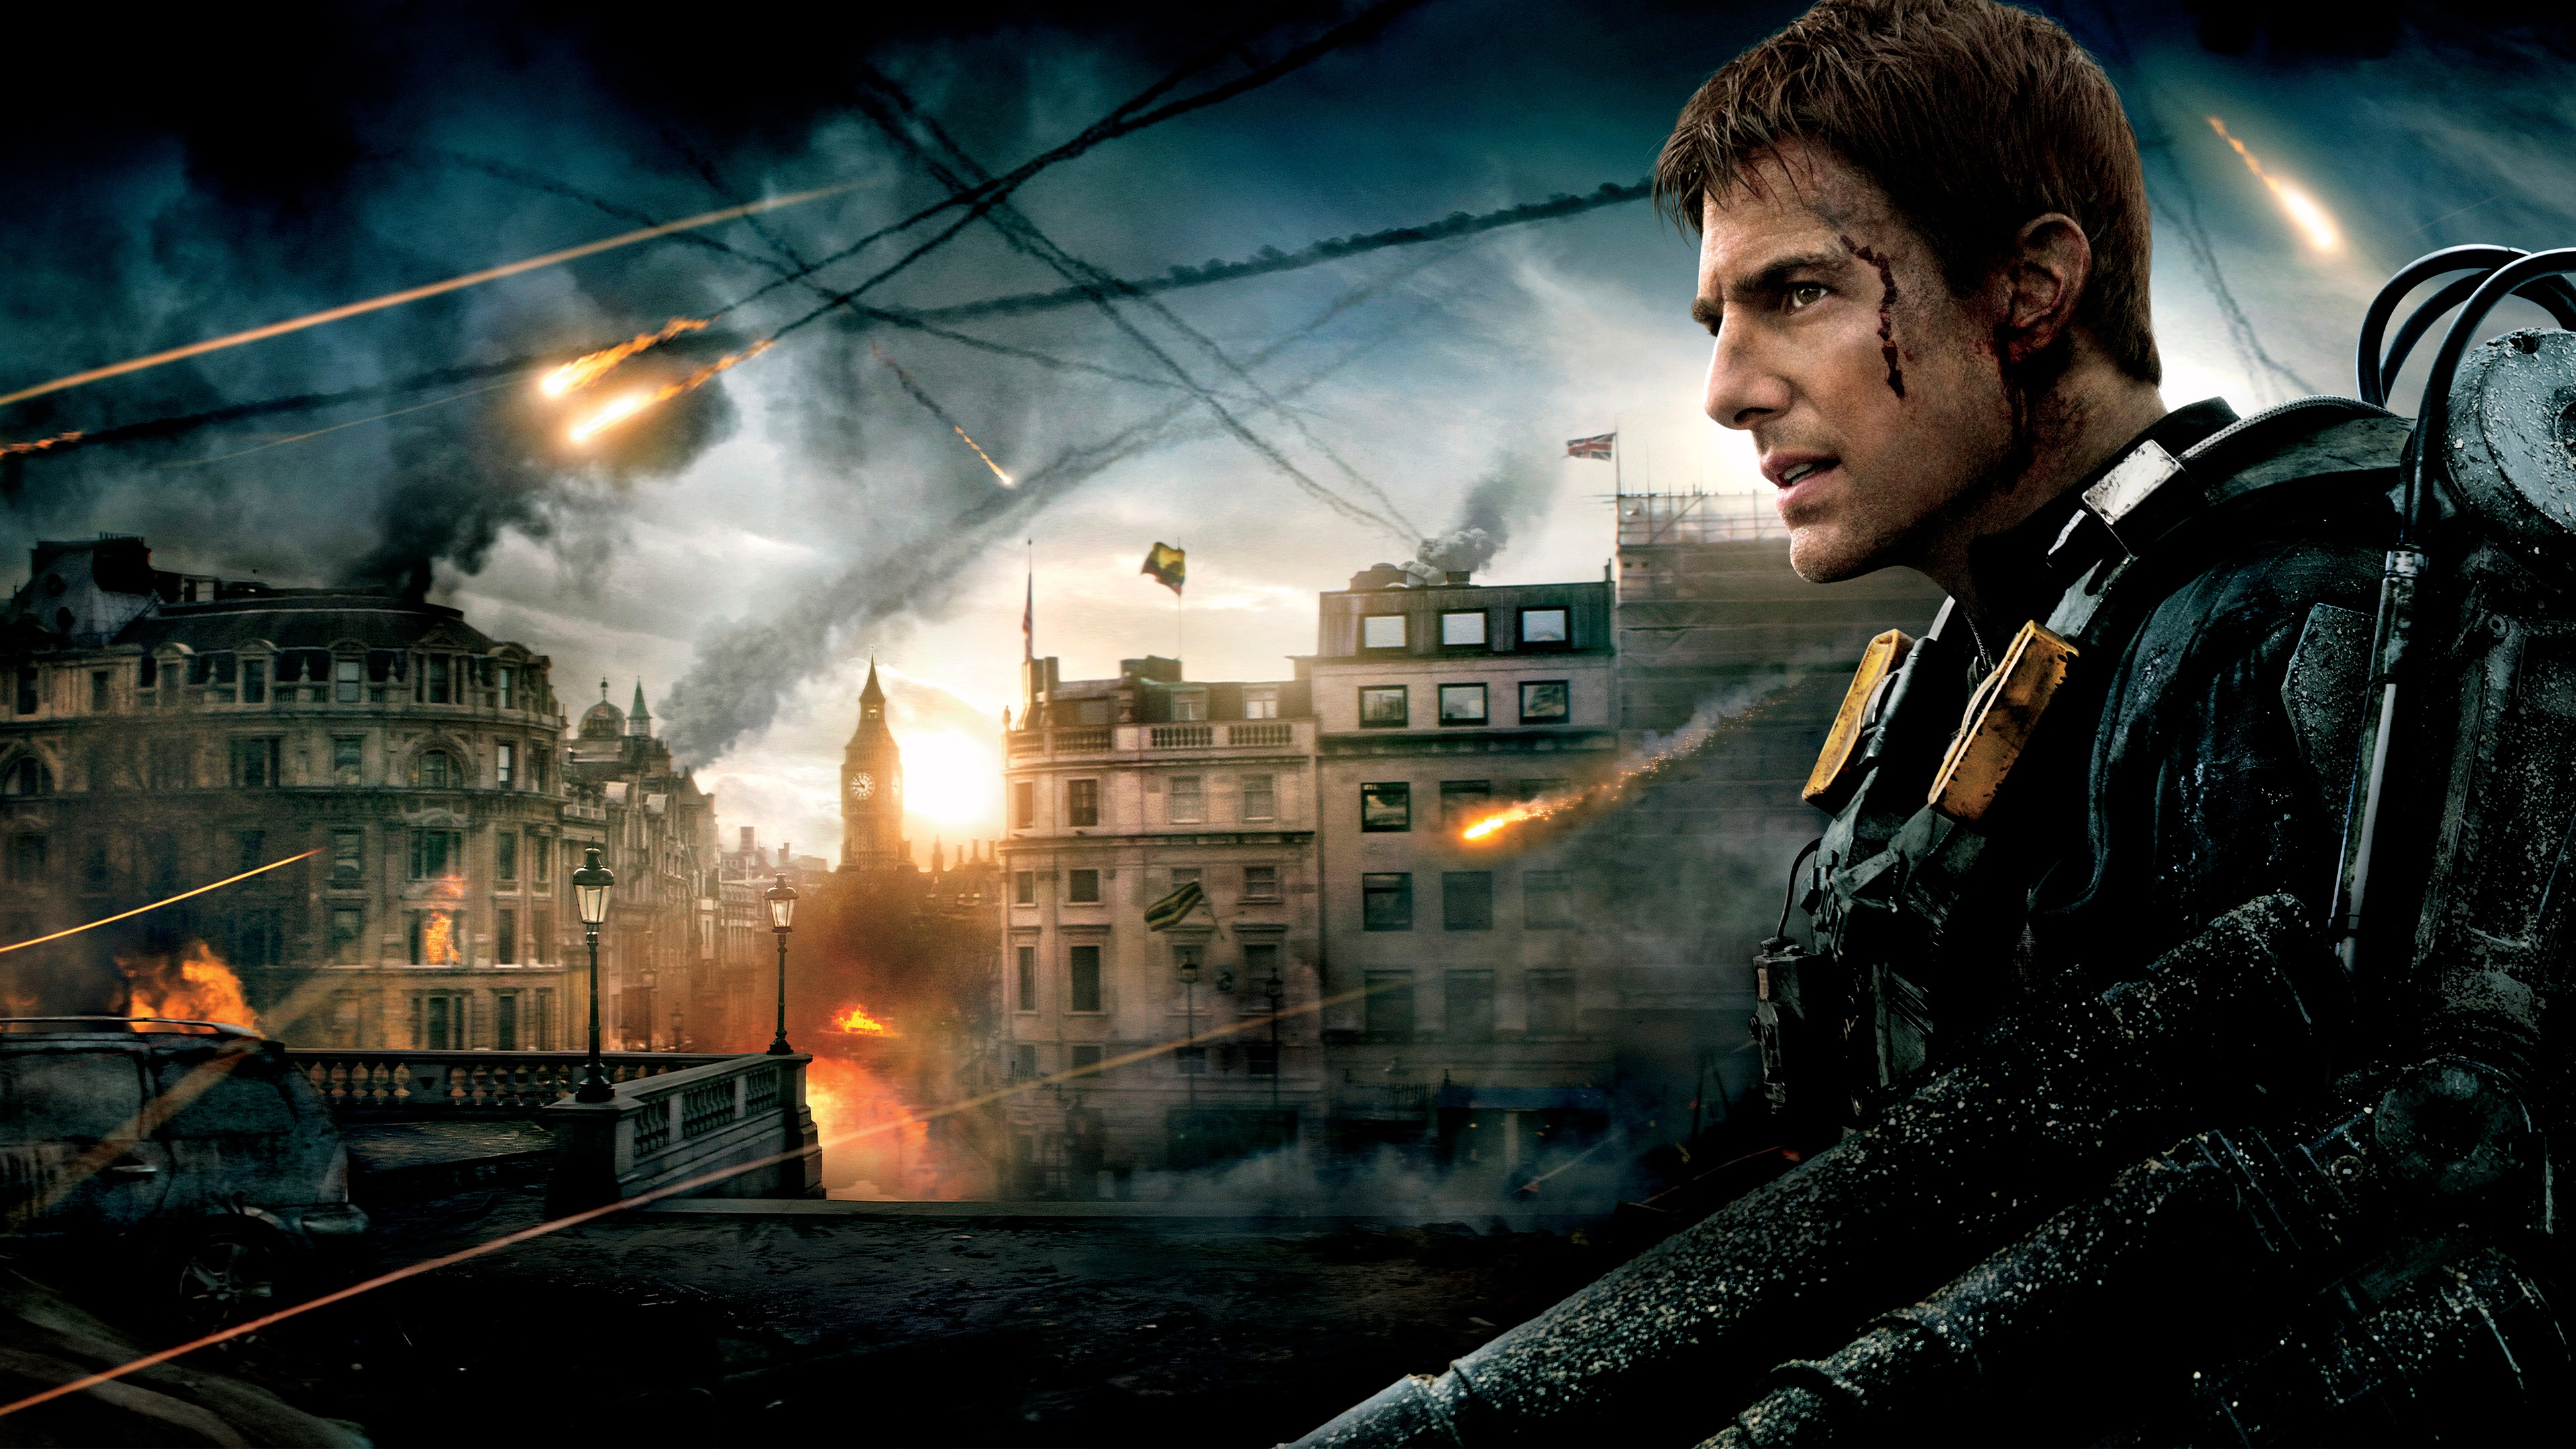 Tom Cruise in Edge of Tomorrow Wallpapers in jpg format for